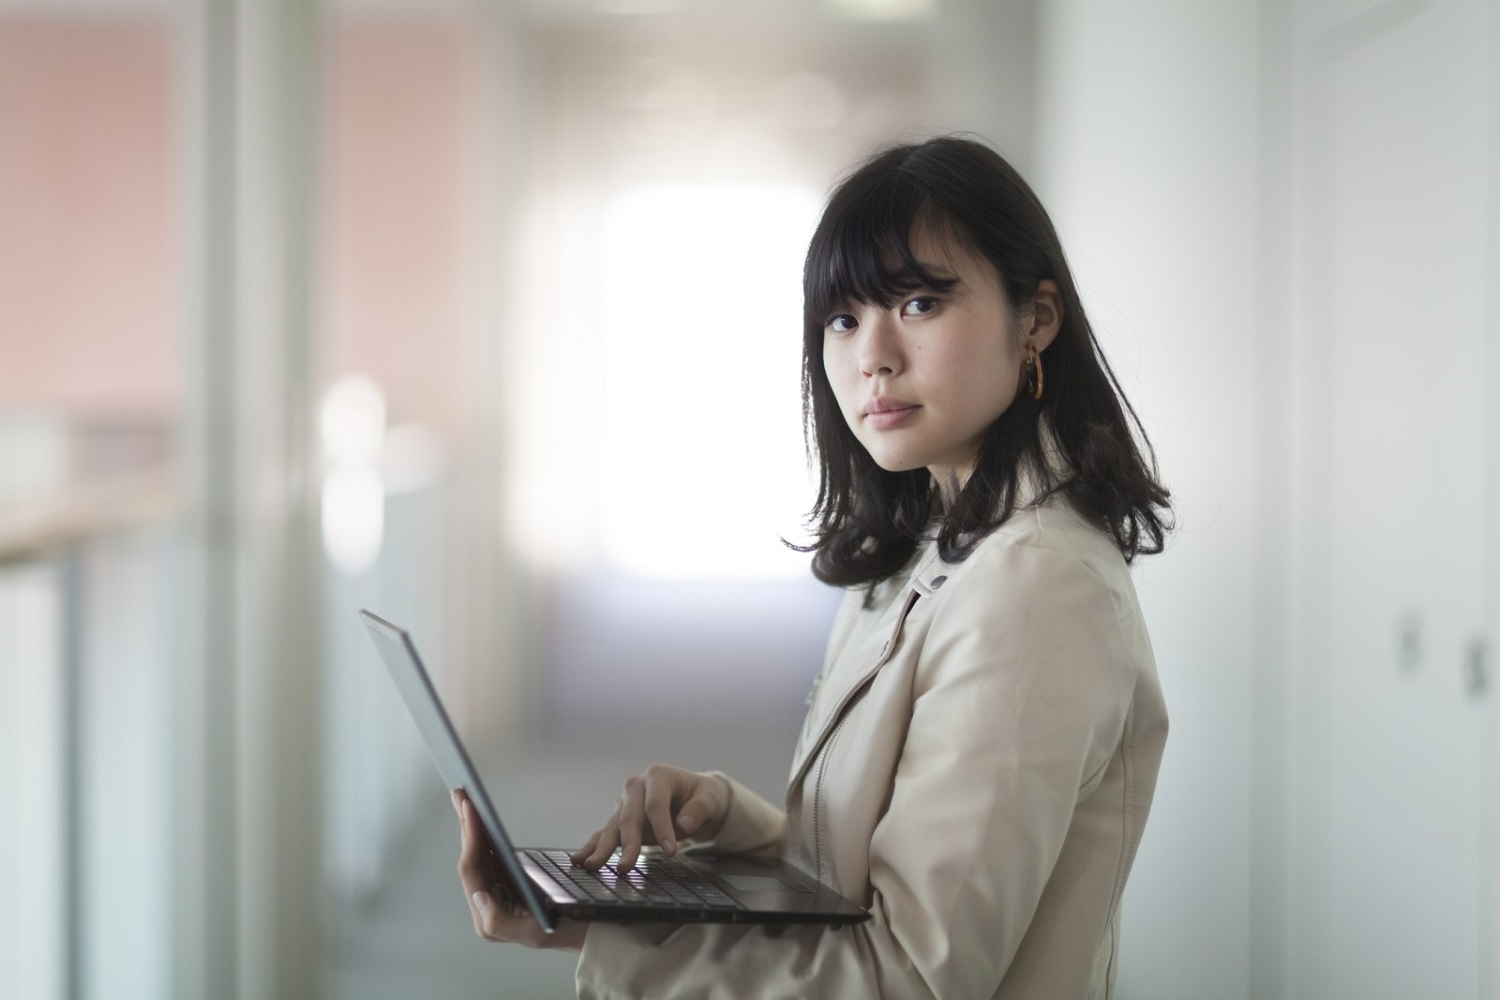 To discover and delve deeper into new applications for 5G, Rakuten Mobile has announced partnerships with three leading institutions in Japan.